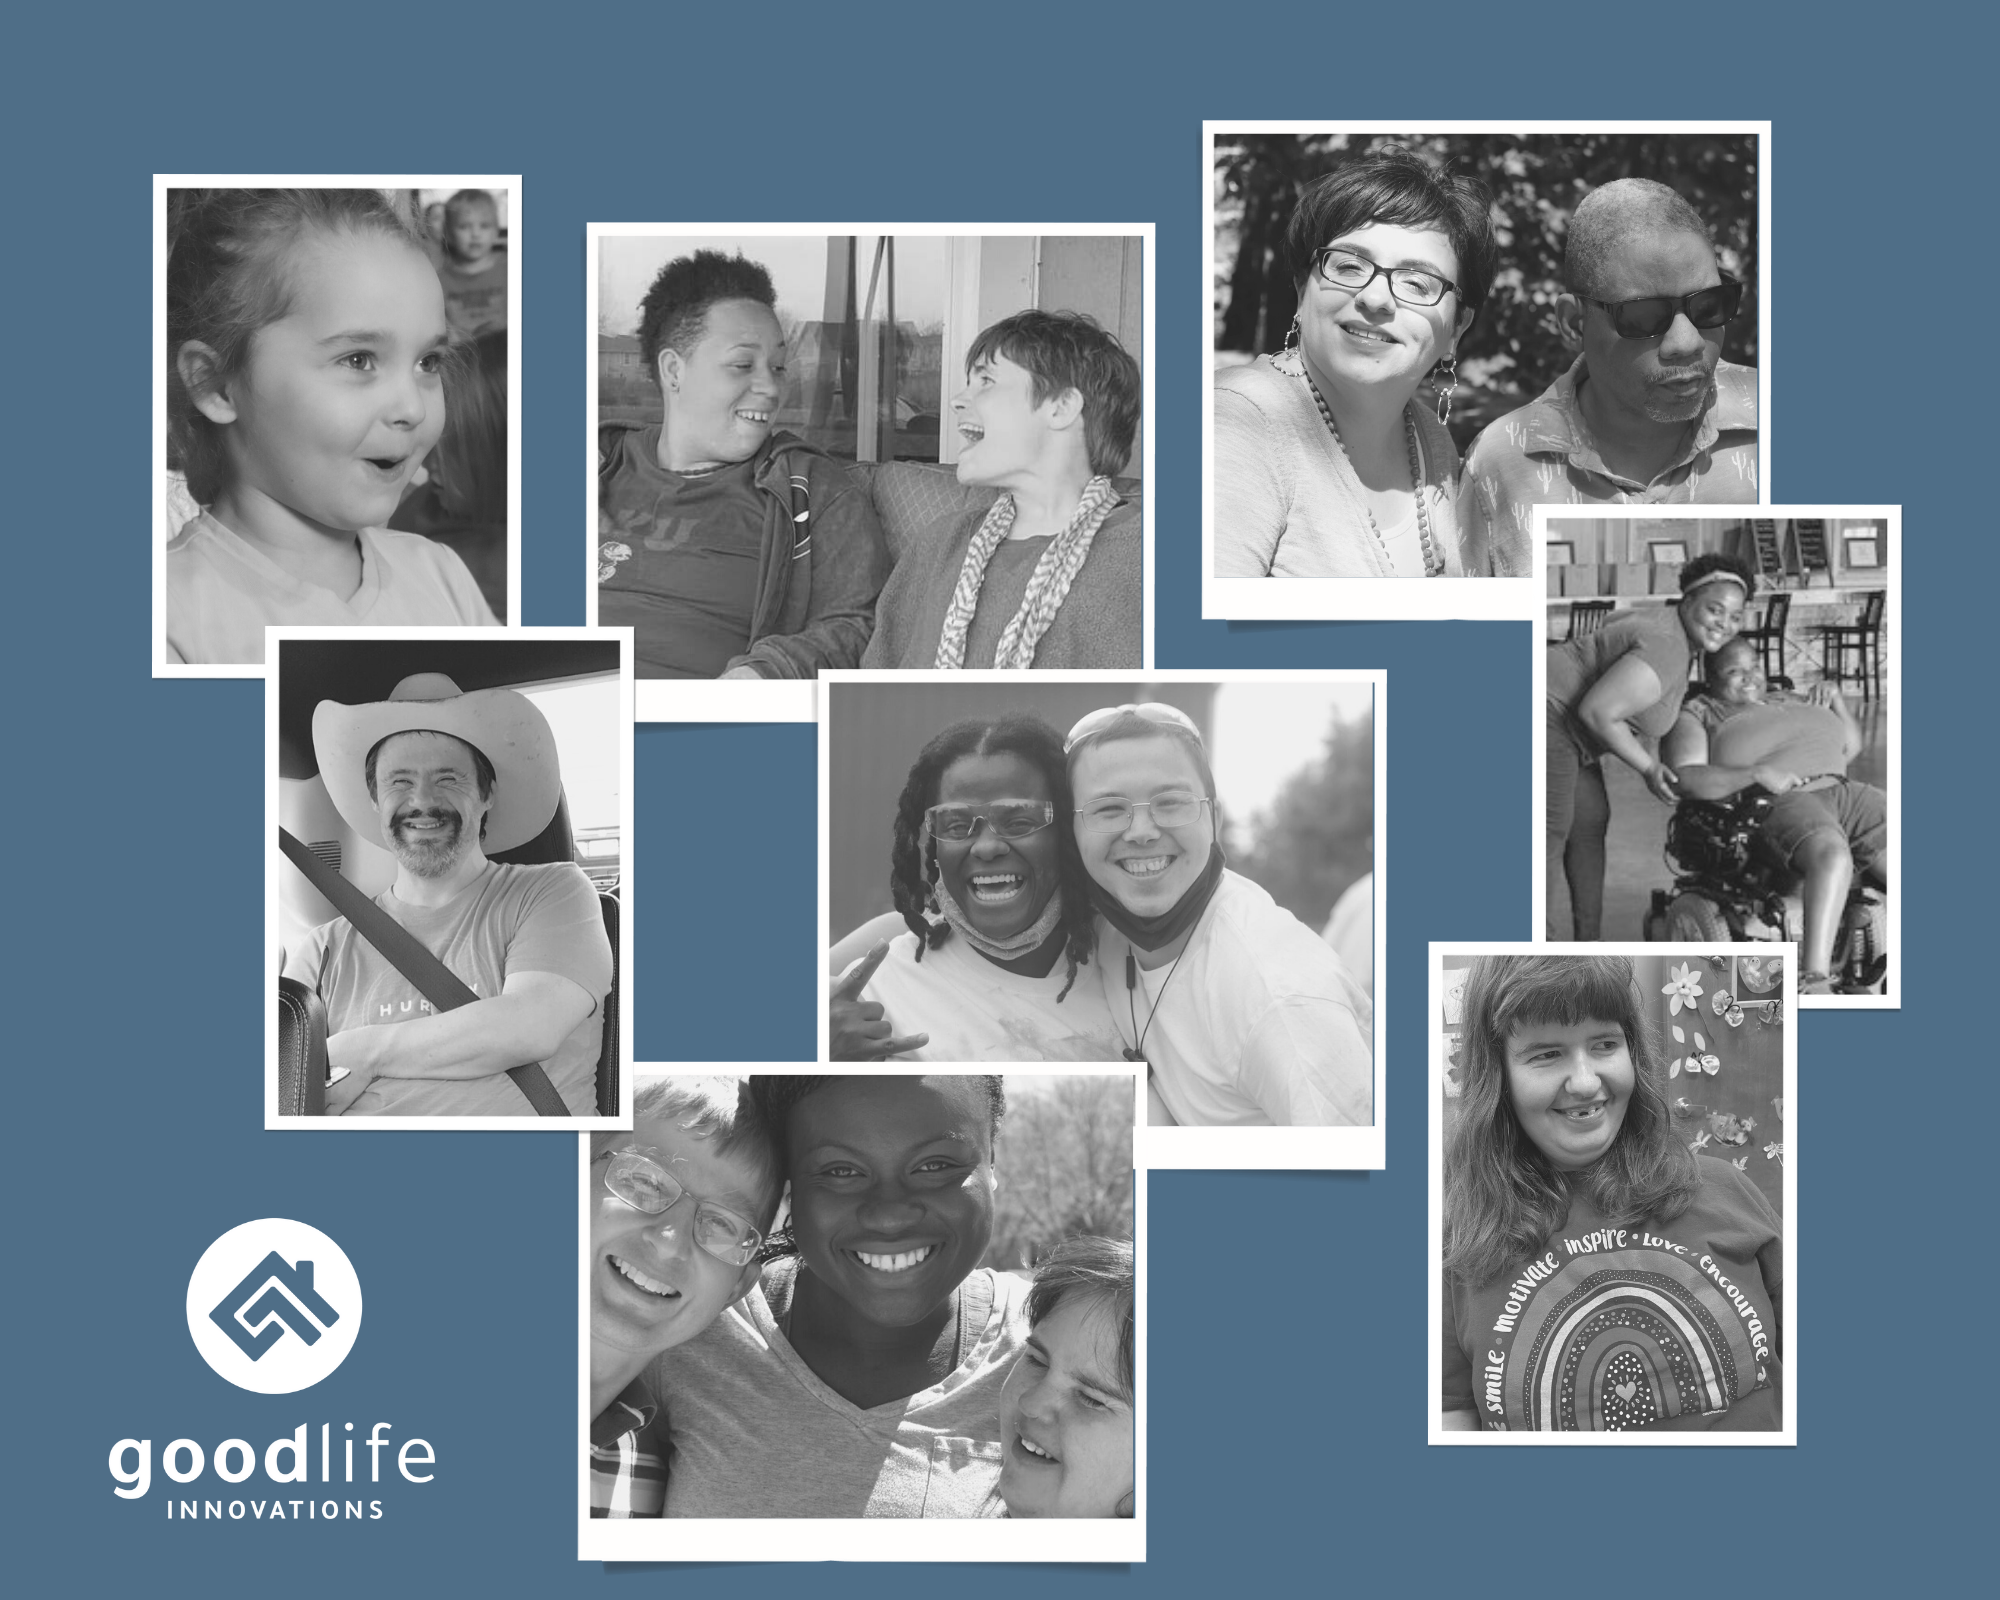 Image collage of GoodLife members & staff